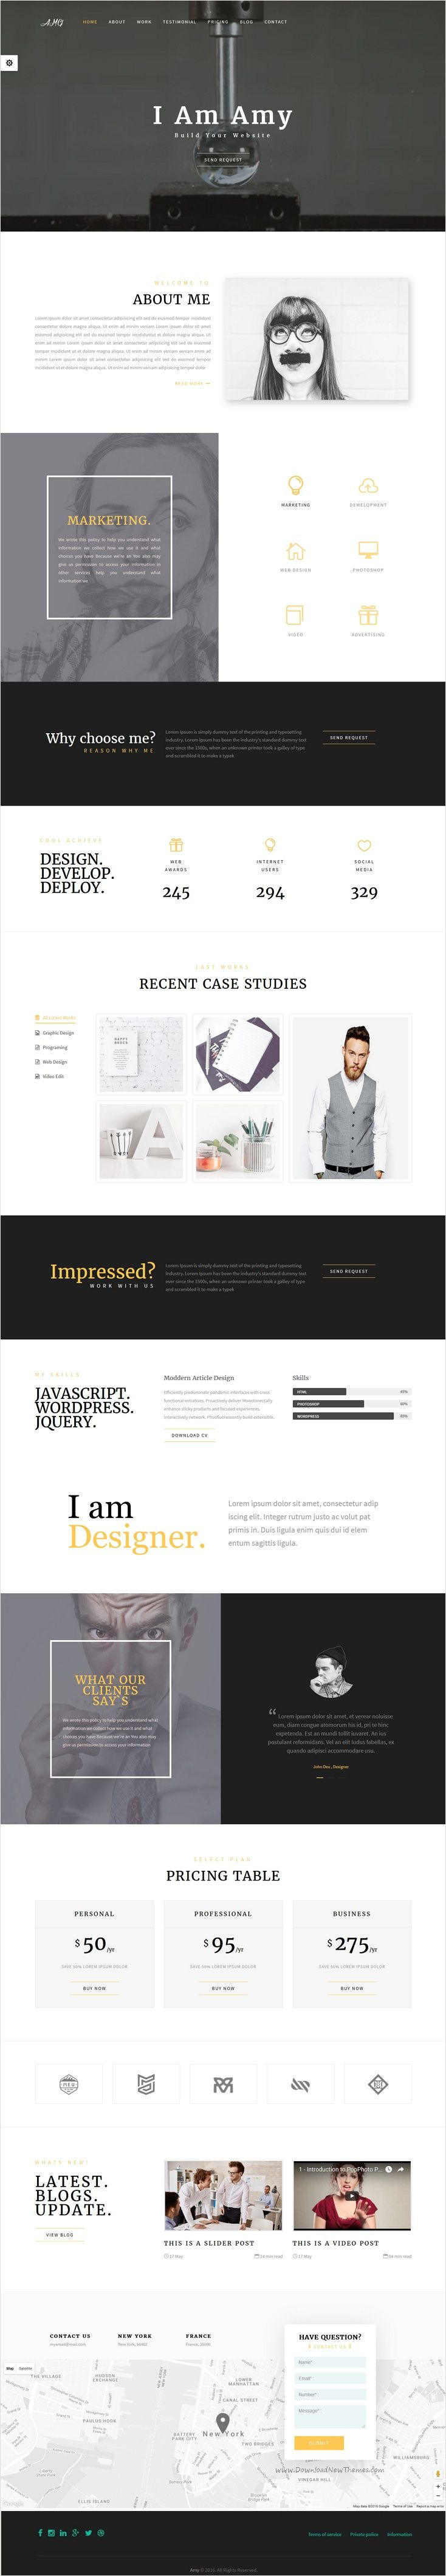 Amy is wonderful 3 in 1 Bootstrap #HTML template for corporate, business, #freelancer and #portfolio website download now ⇨ https://themeforest.net/item/amy-responsive-corporate-business-portfolio-template/17163764?ref=Datasata